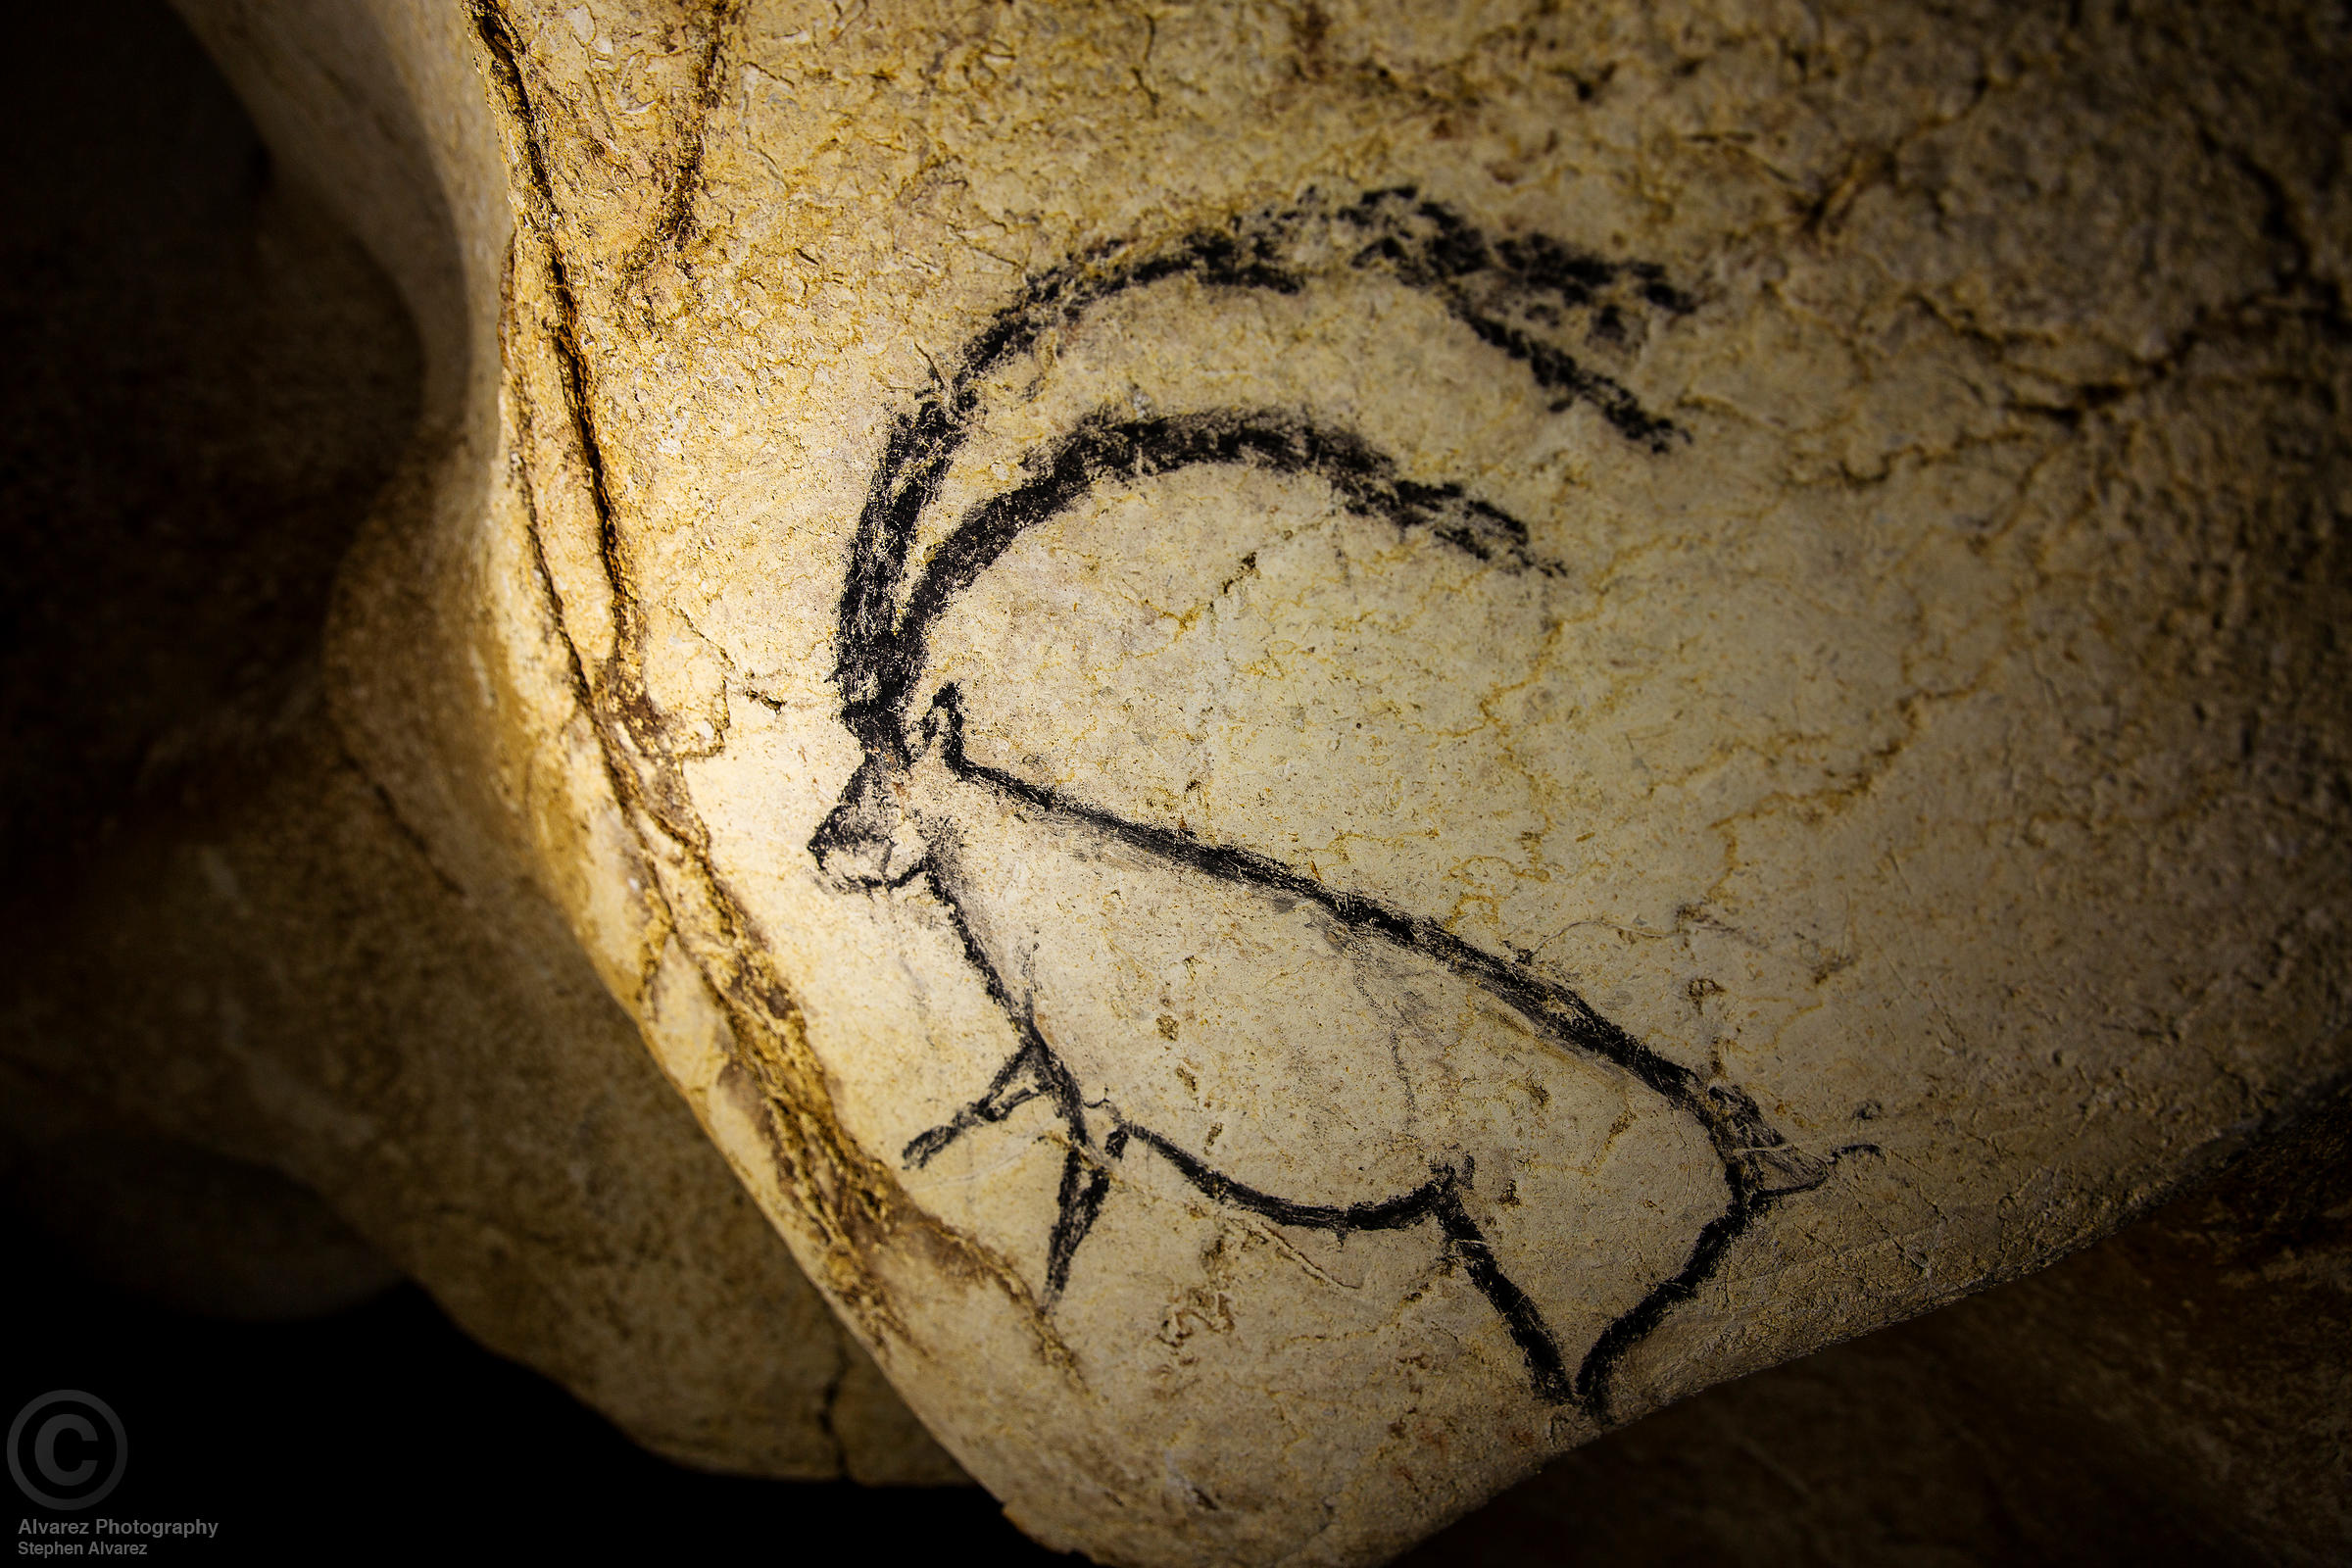 An ibex in the gallery of the Megaceros, Chauvet Cave.